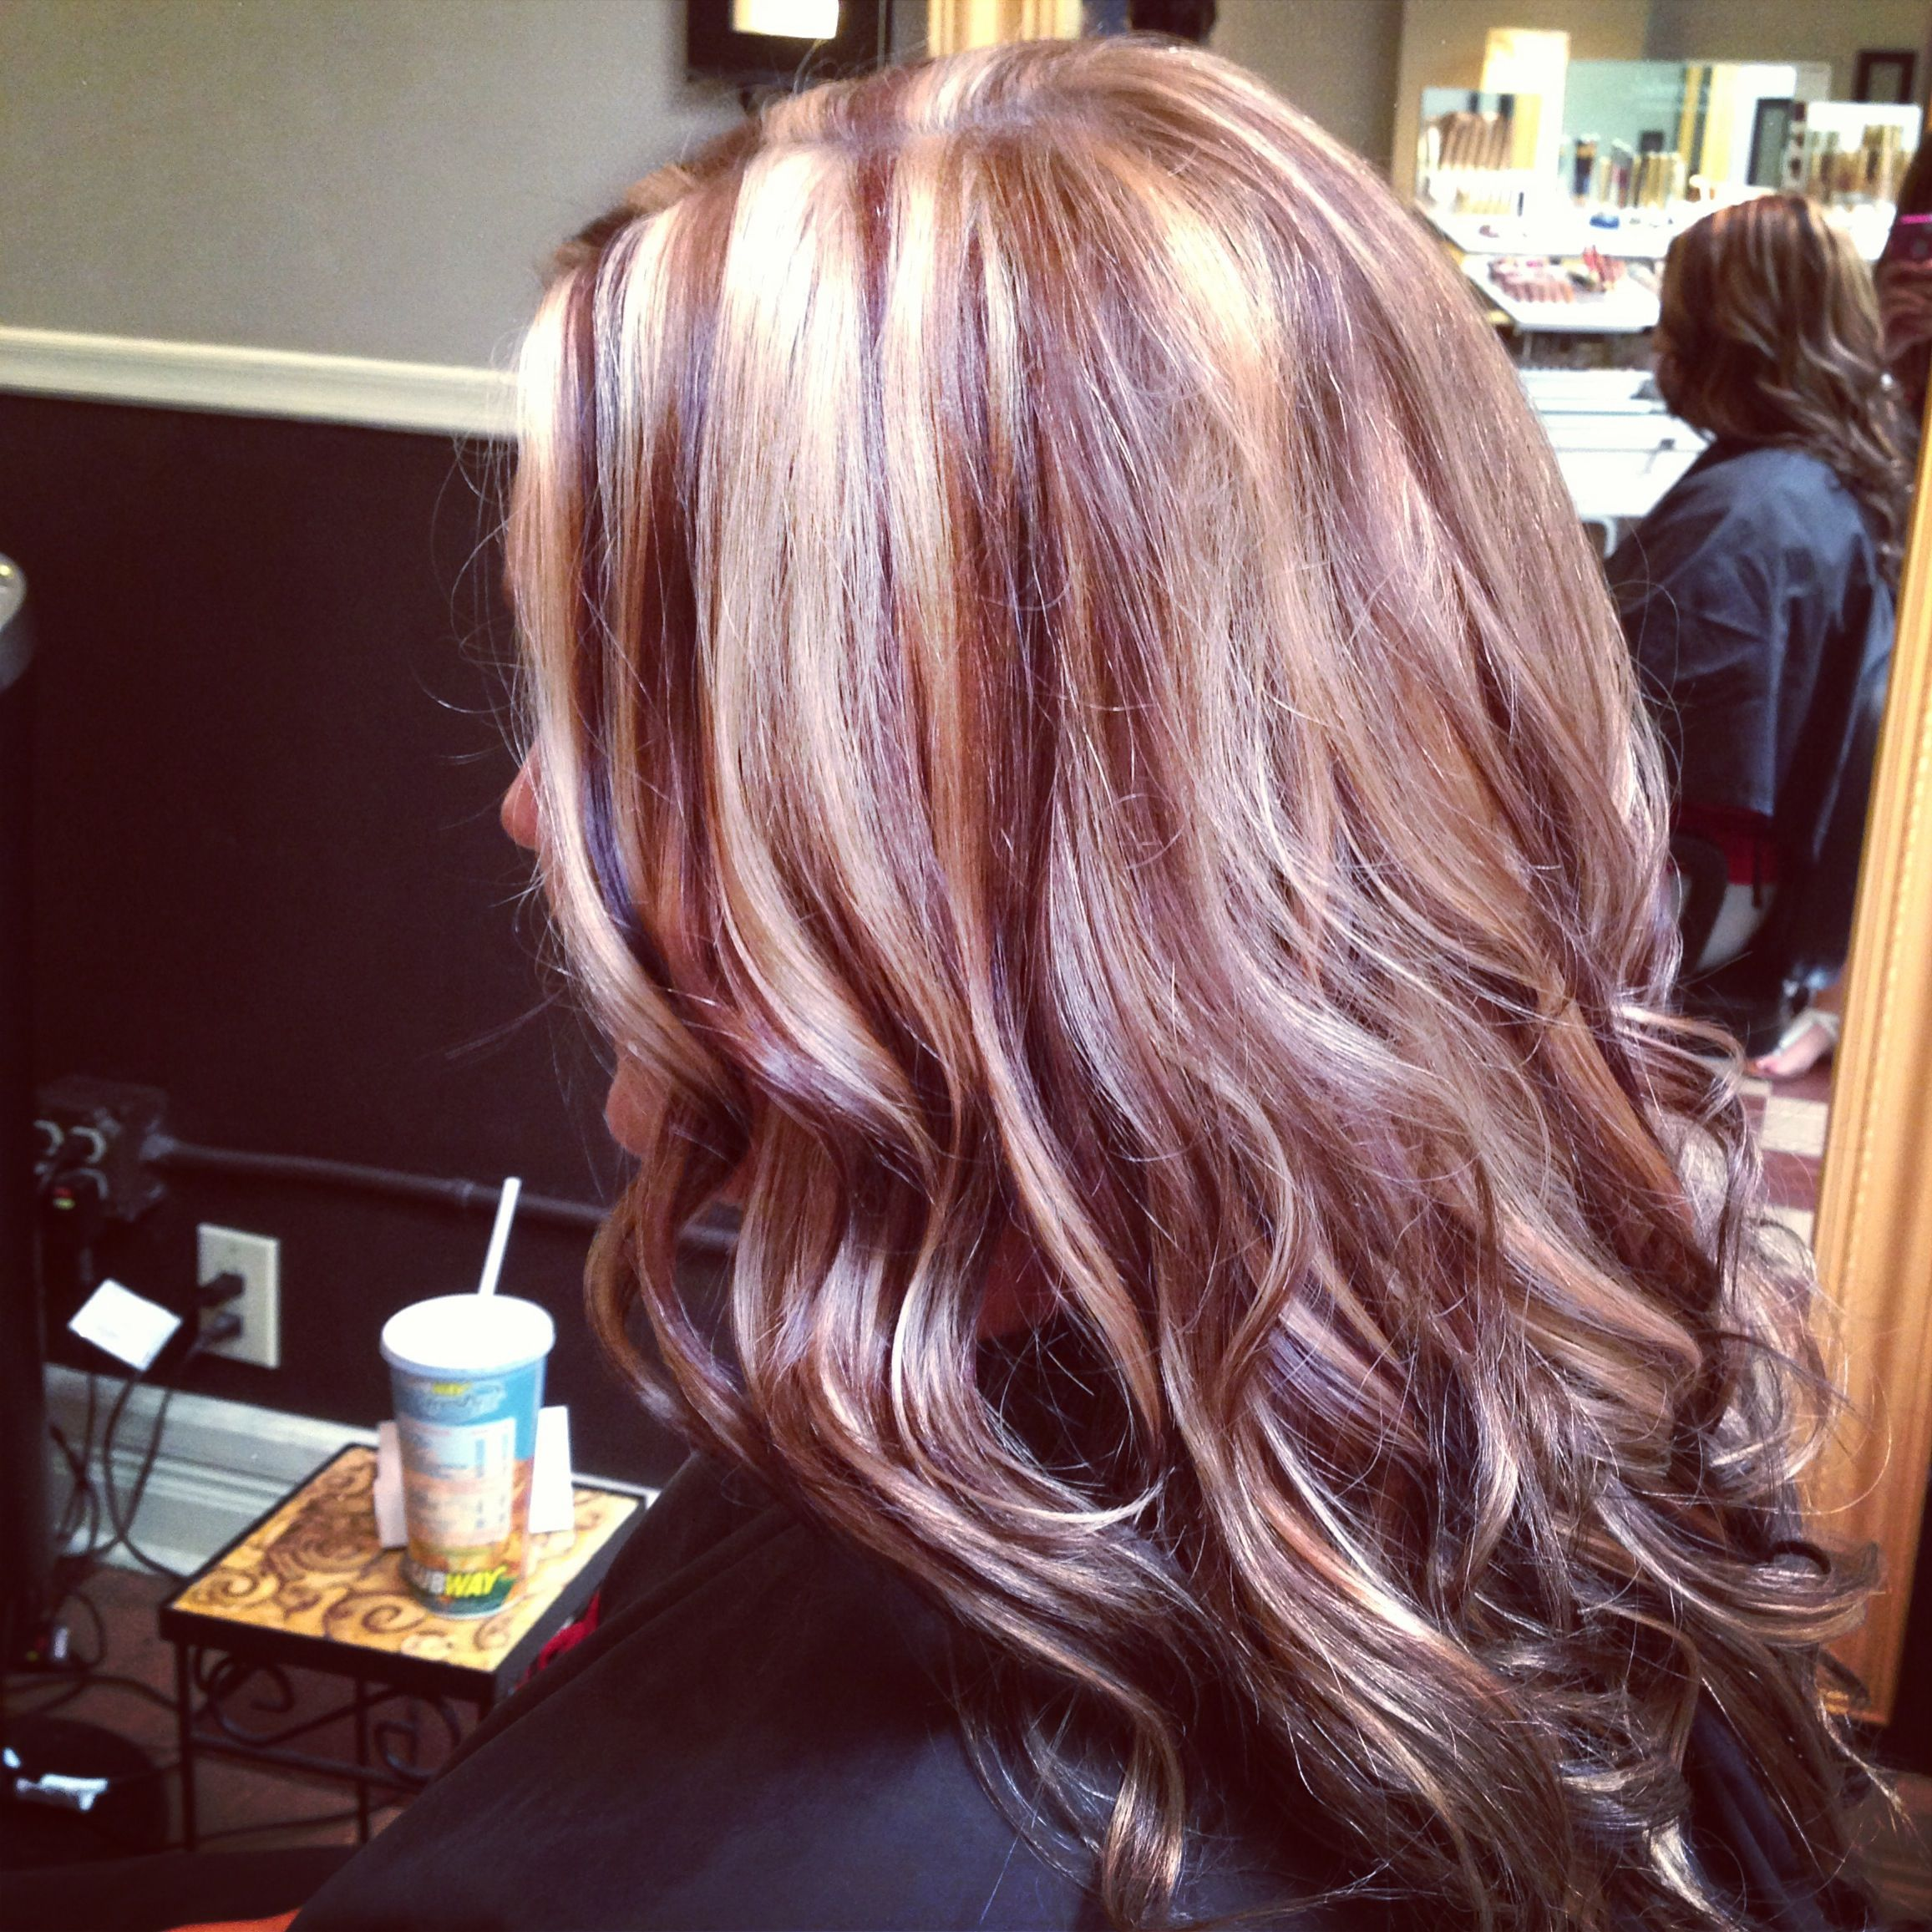 Full of dimension hair. Highlights and lowlights. | Hair | Pinterest